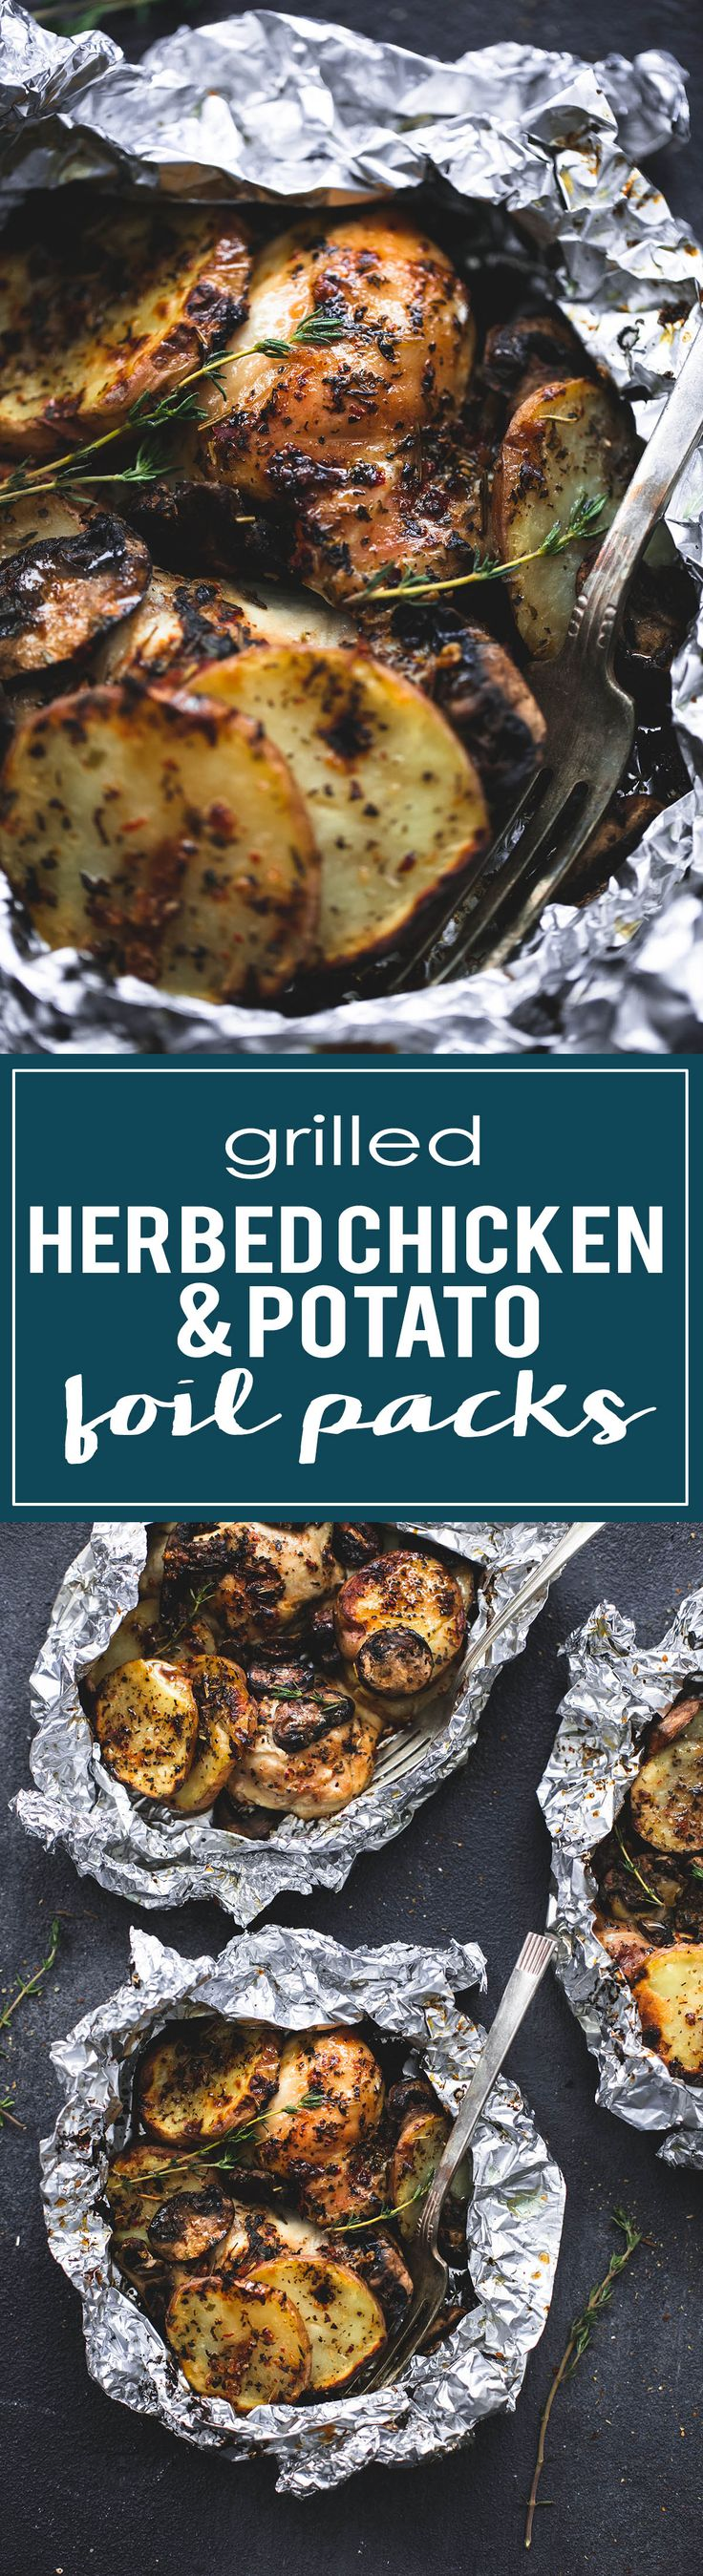 Grilled herbed chicken & potato foil packs are a fun and simple summer dinner that the whole family will love. They can even be made on a…